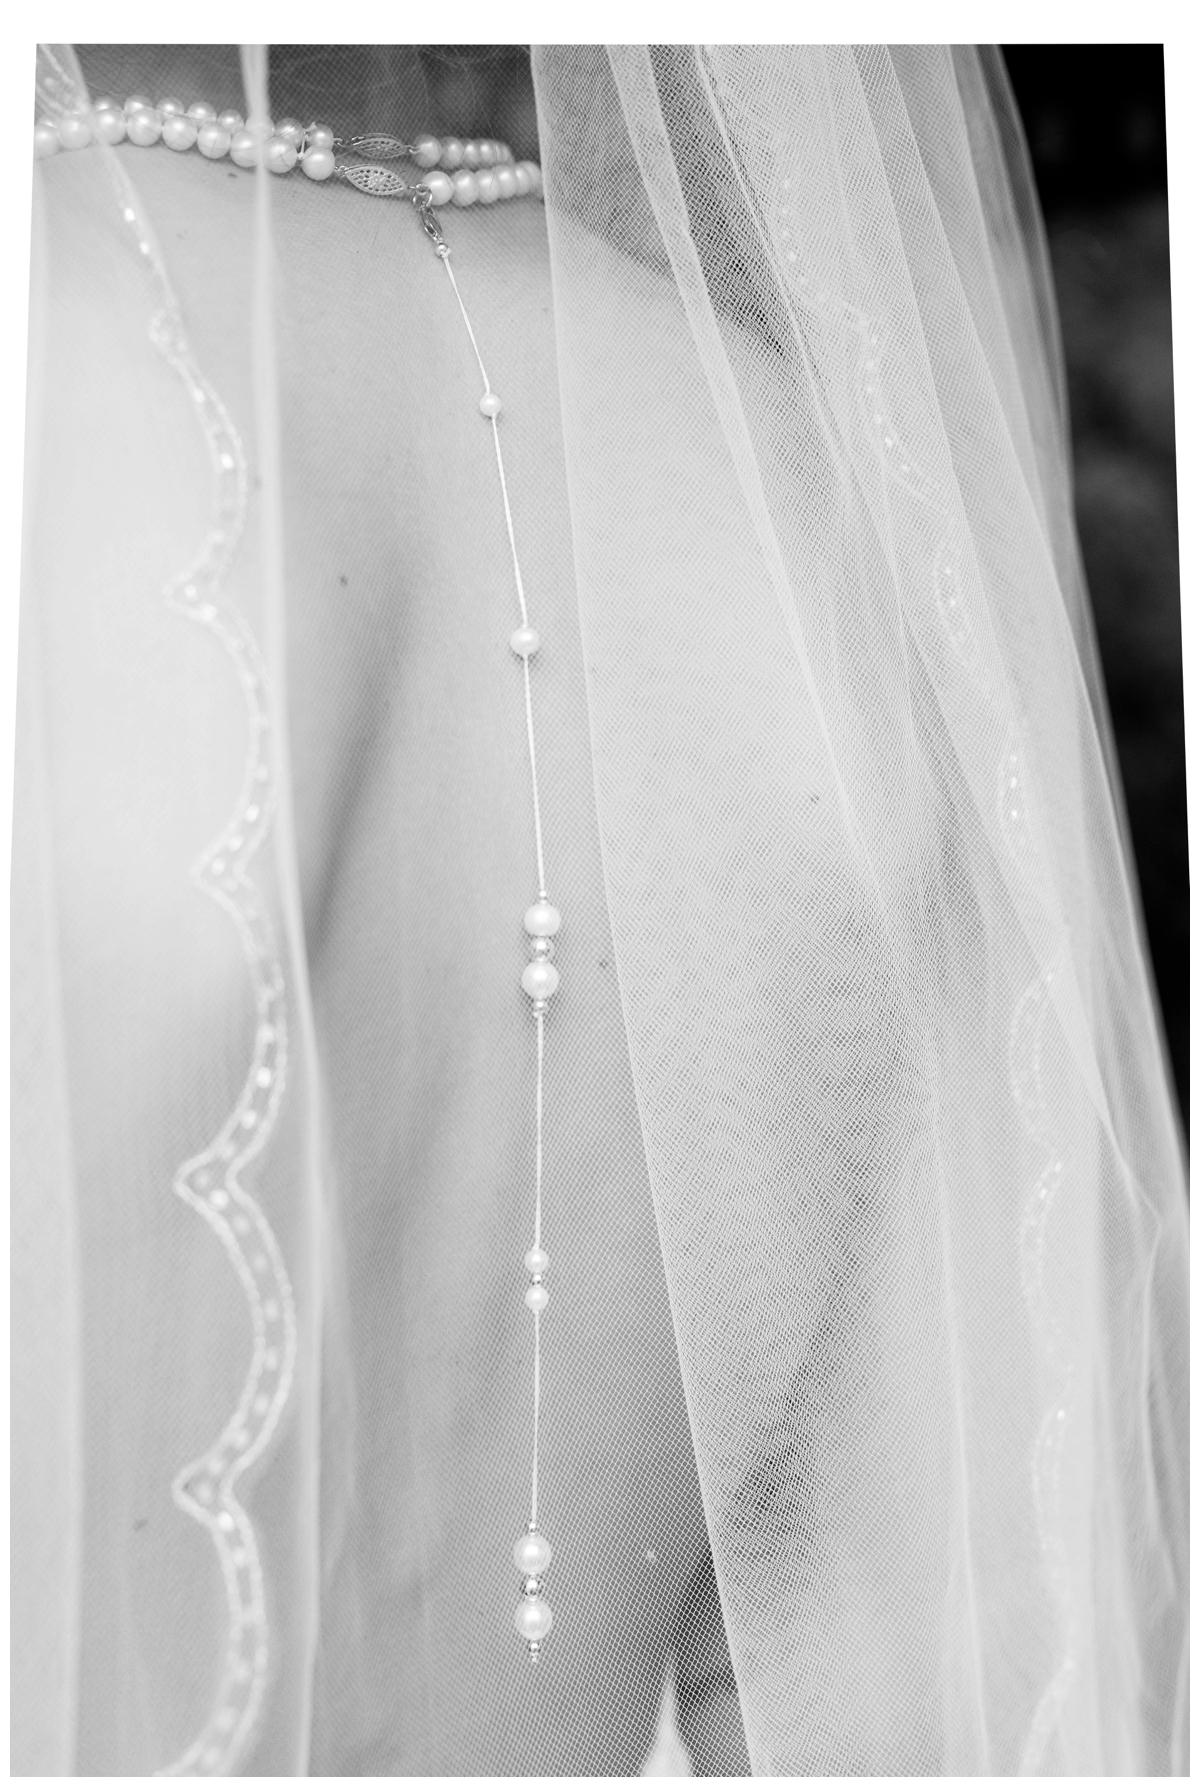 black and white bride's details Wedgewood Granite Rose Wedding photographer Hampstead, NH Q Hegarty Photography